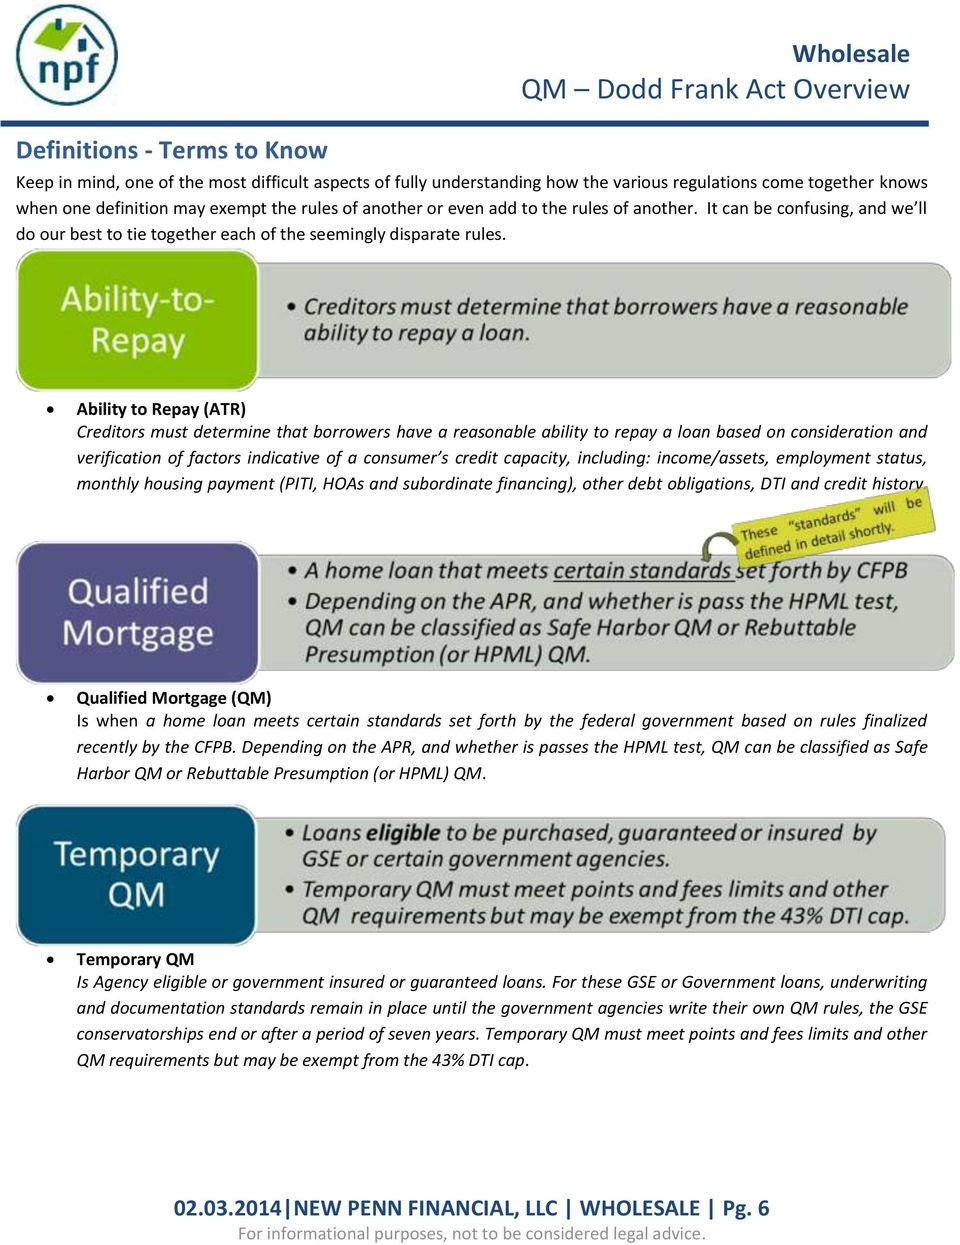 Ability to Repay (ATR) Creditors must determine that borrowers have a reasonable ability to repay a loan based on consideration and verification of factors indicative of a consumer s credit capacity,